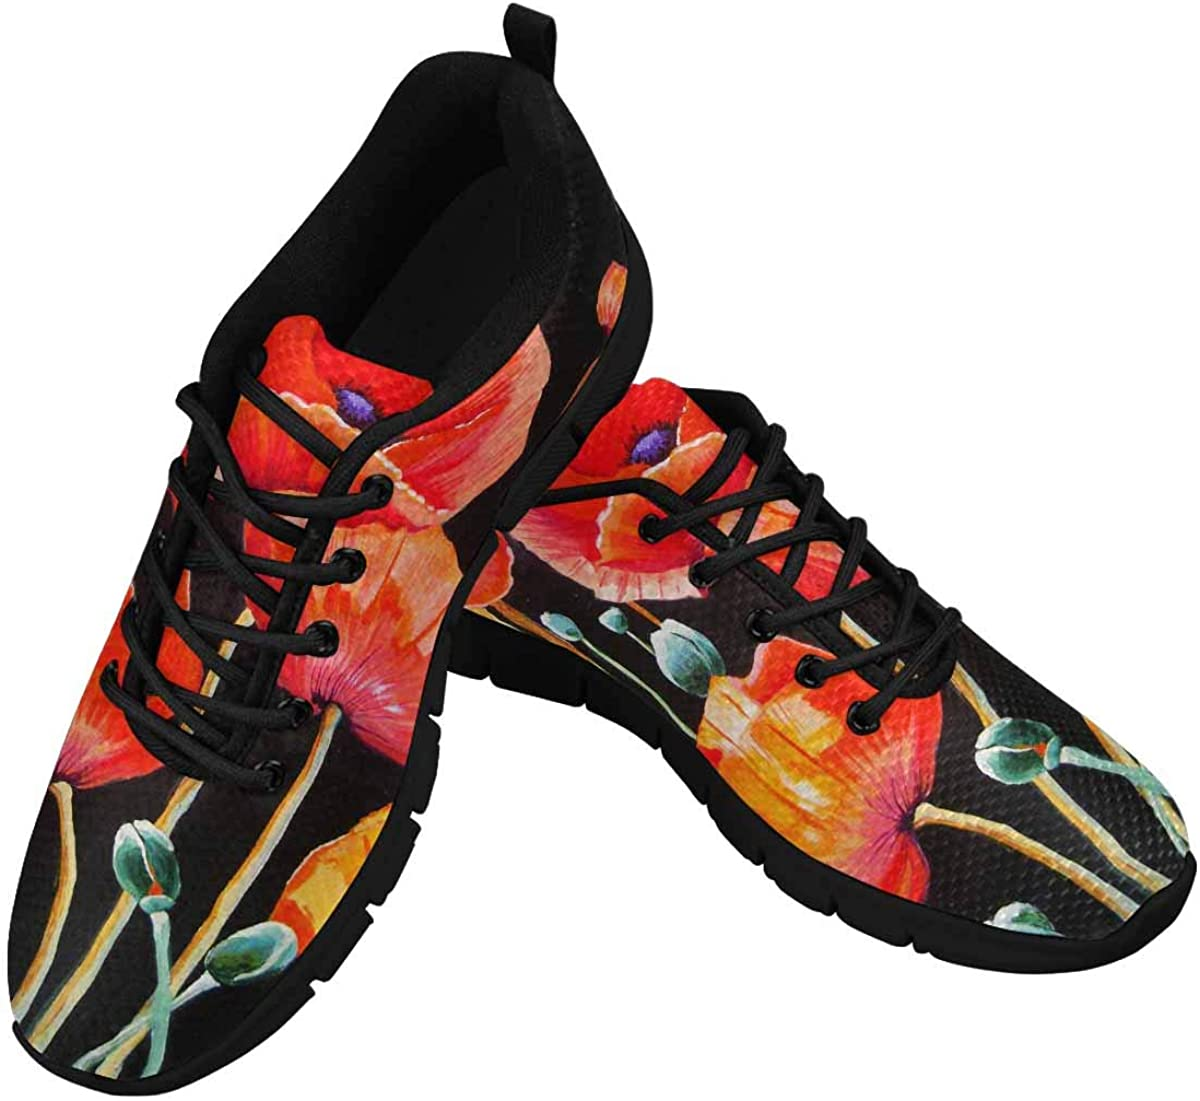 INTERESTPRINT Red Poppy Women's Running Shoes Mesh Breathable Sports Casual Shoes